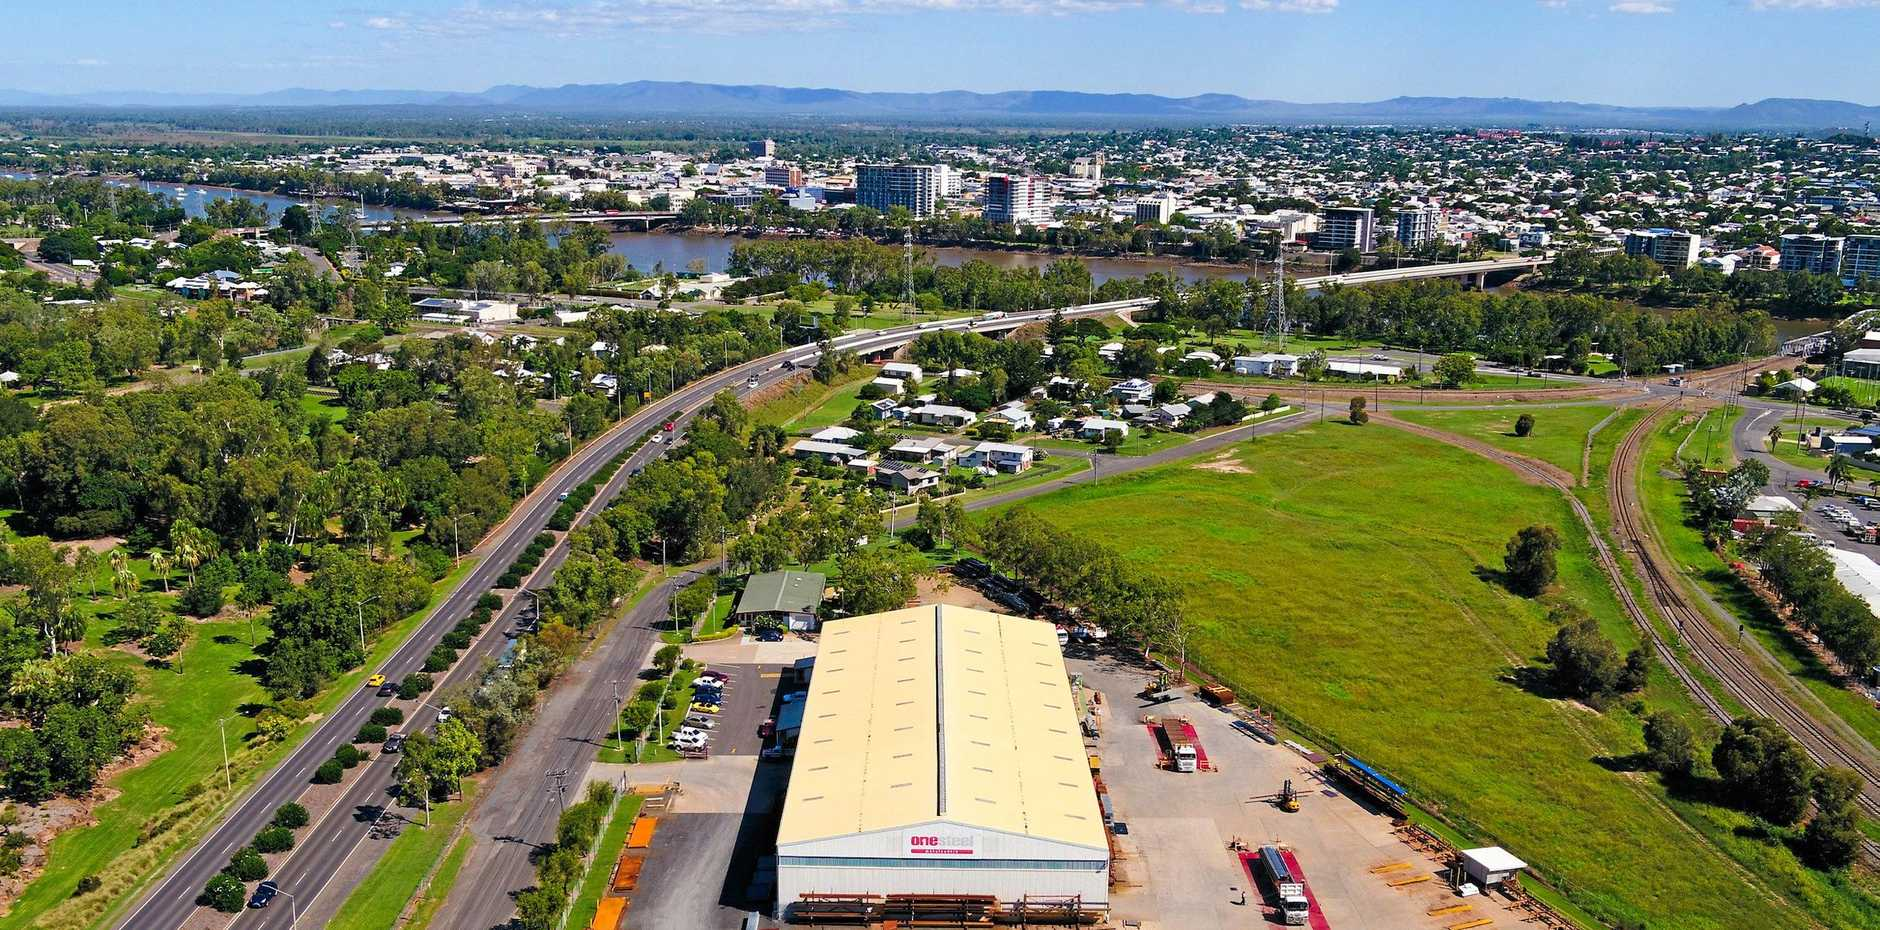 Rare' industrial site for sale, investors eye opportunities